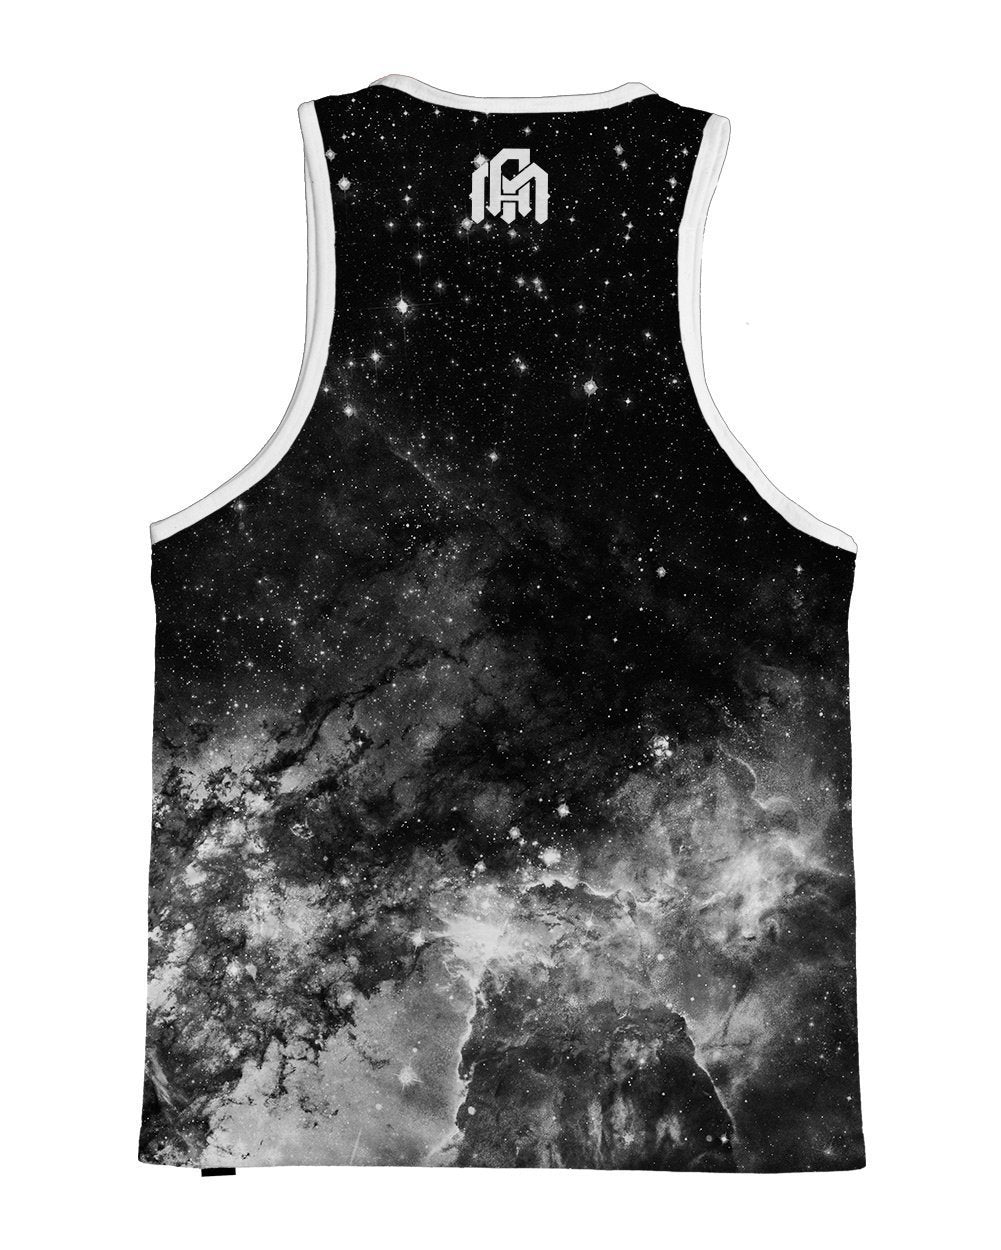 Dark Matter Men's Tank Top